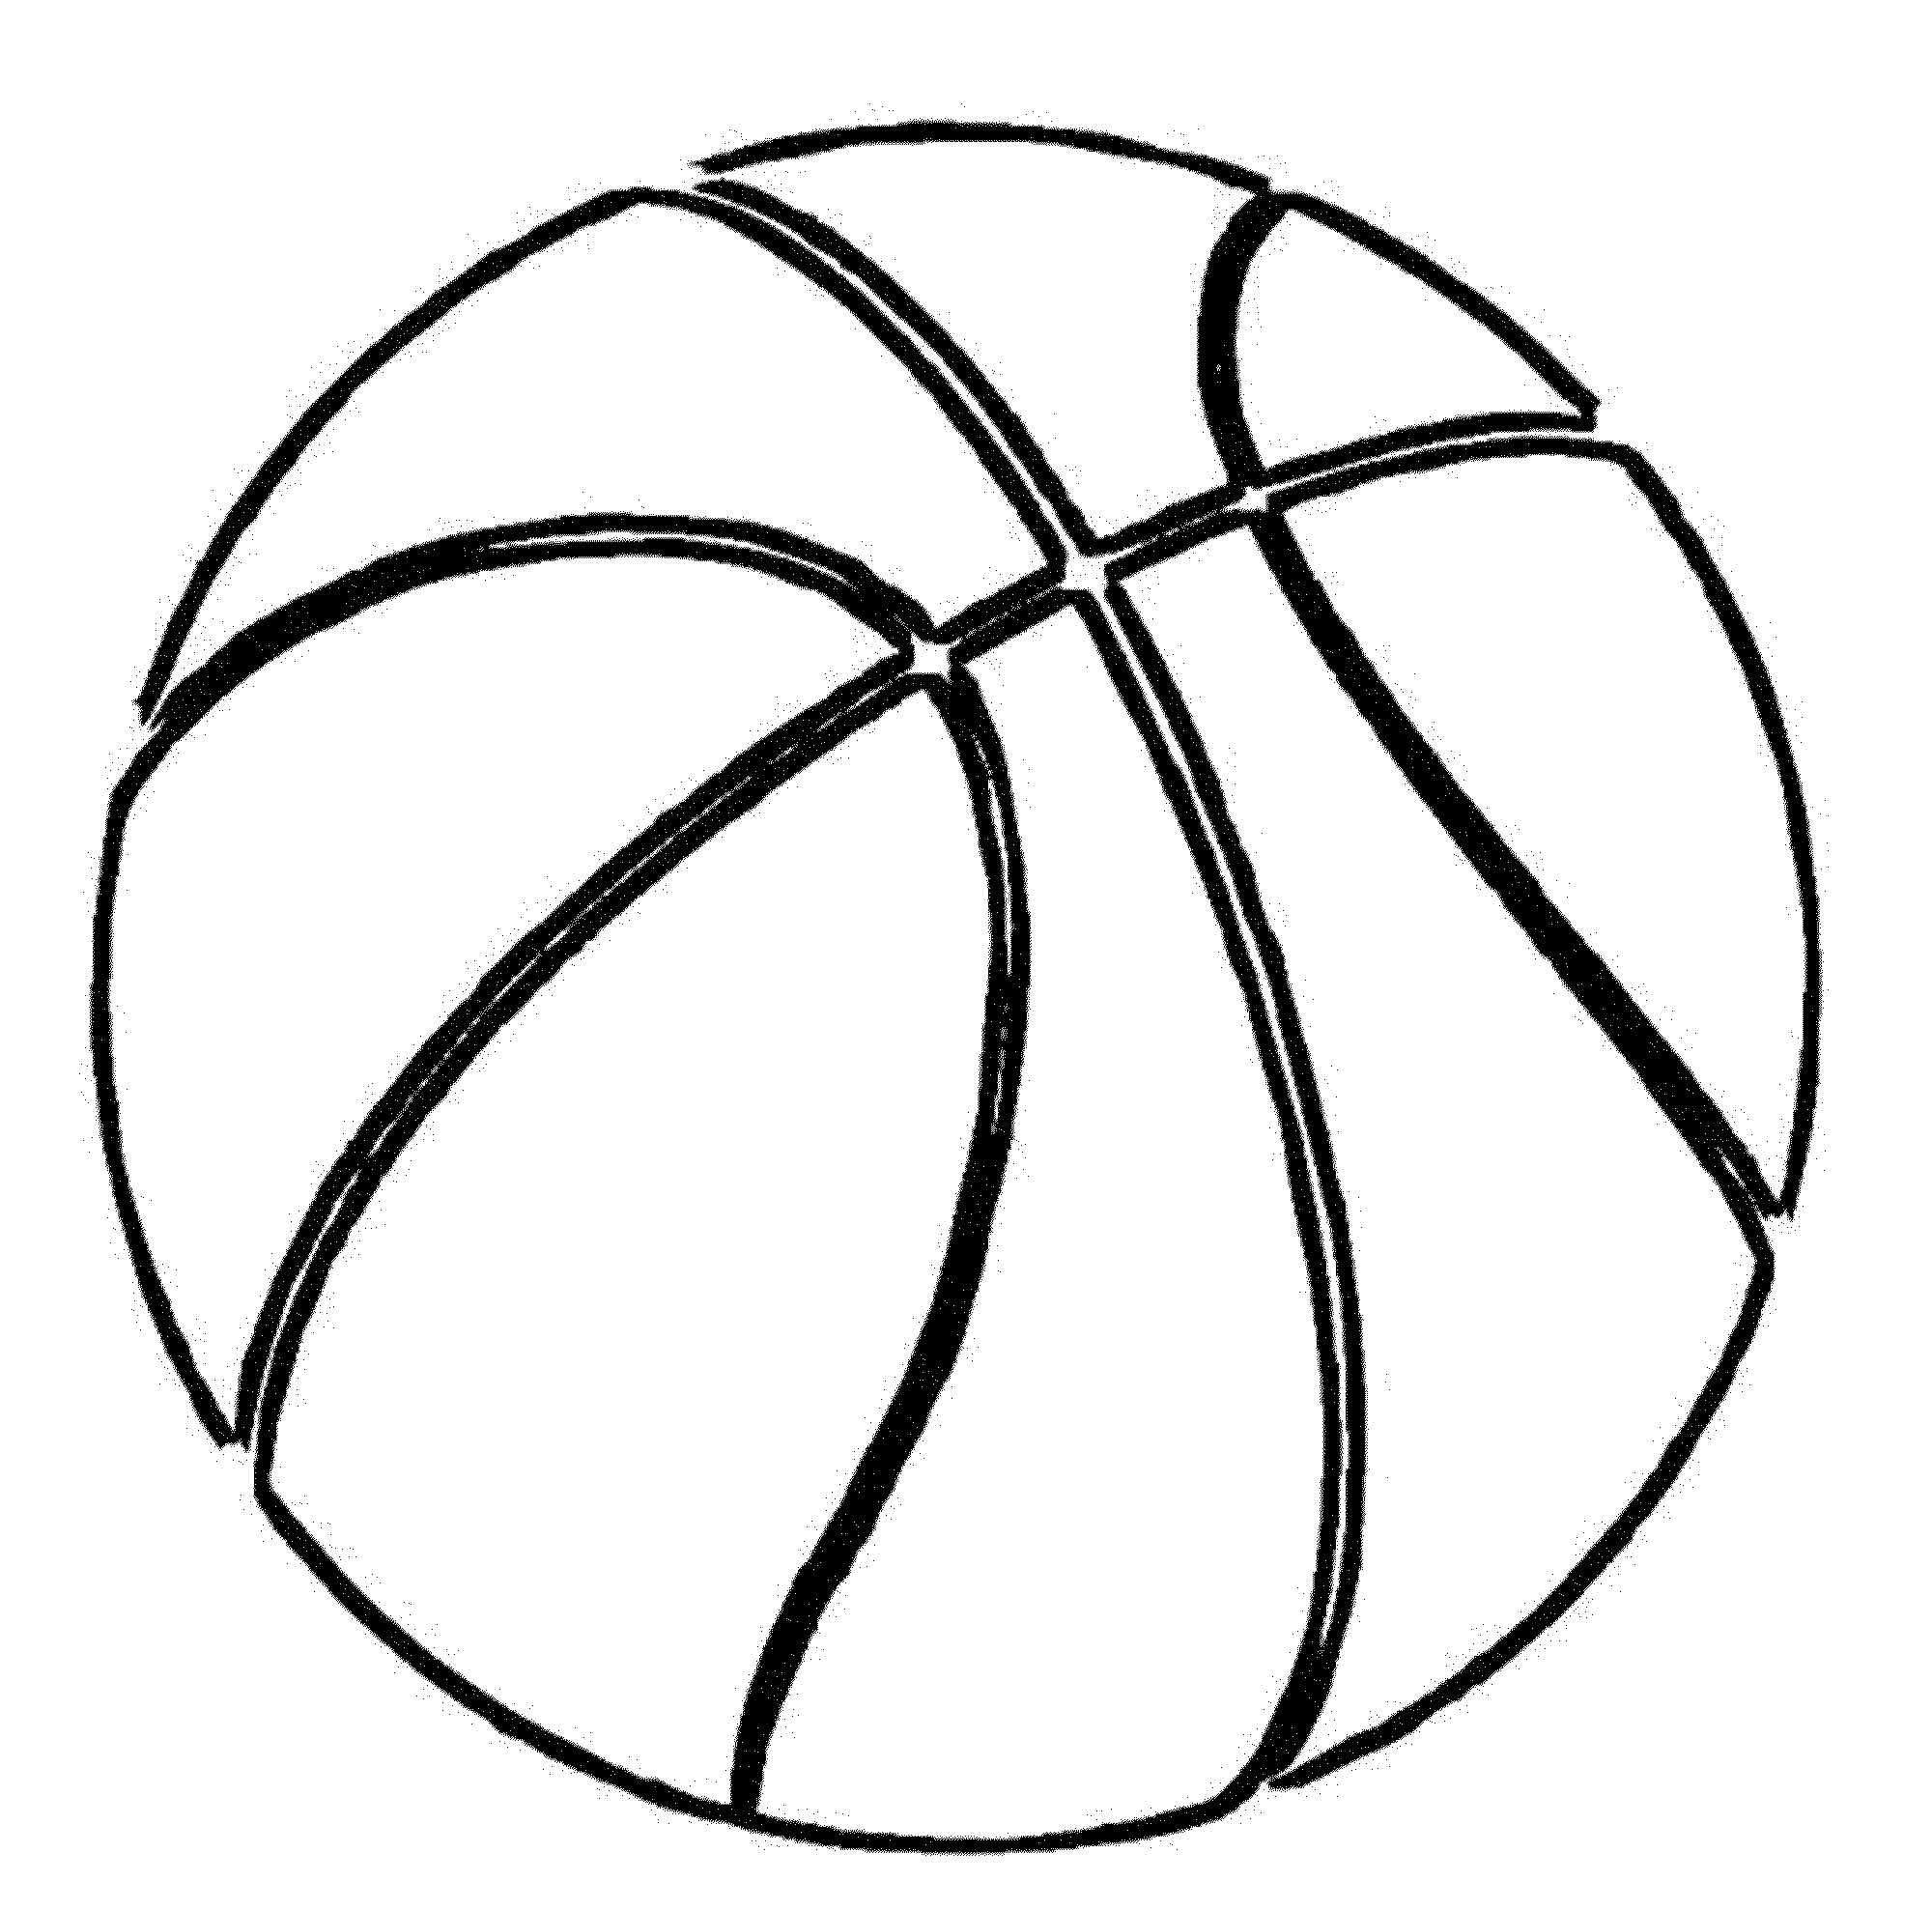 drawing of a basketball basketball ball drawing at paintingvalleycom explore a basketball drawing of